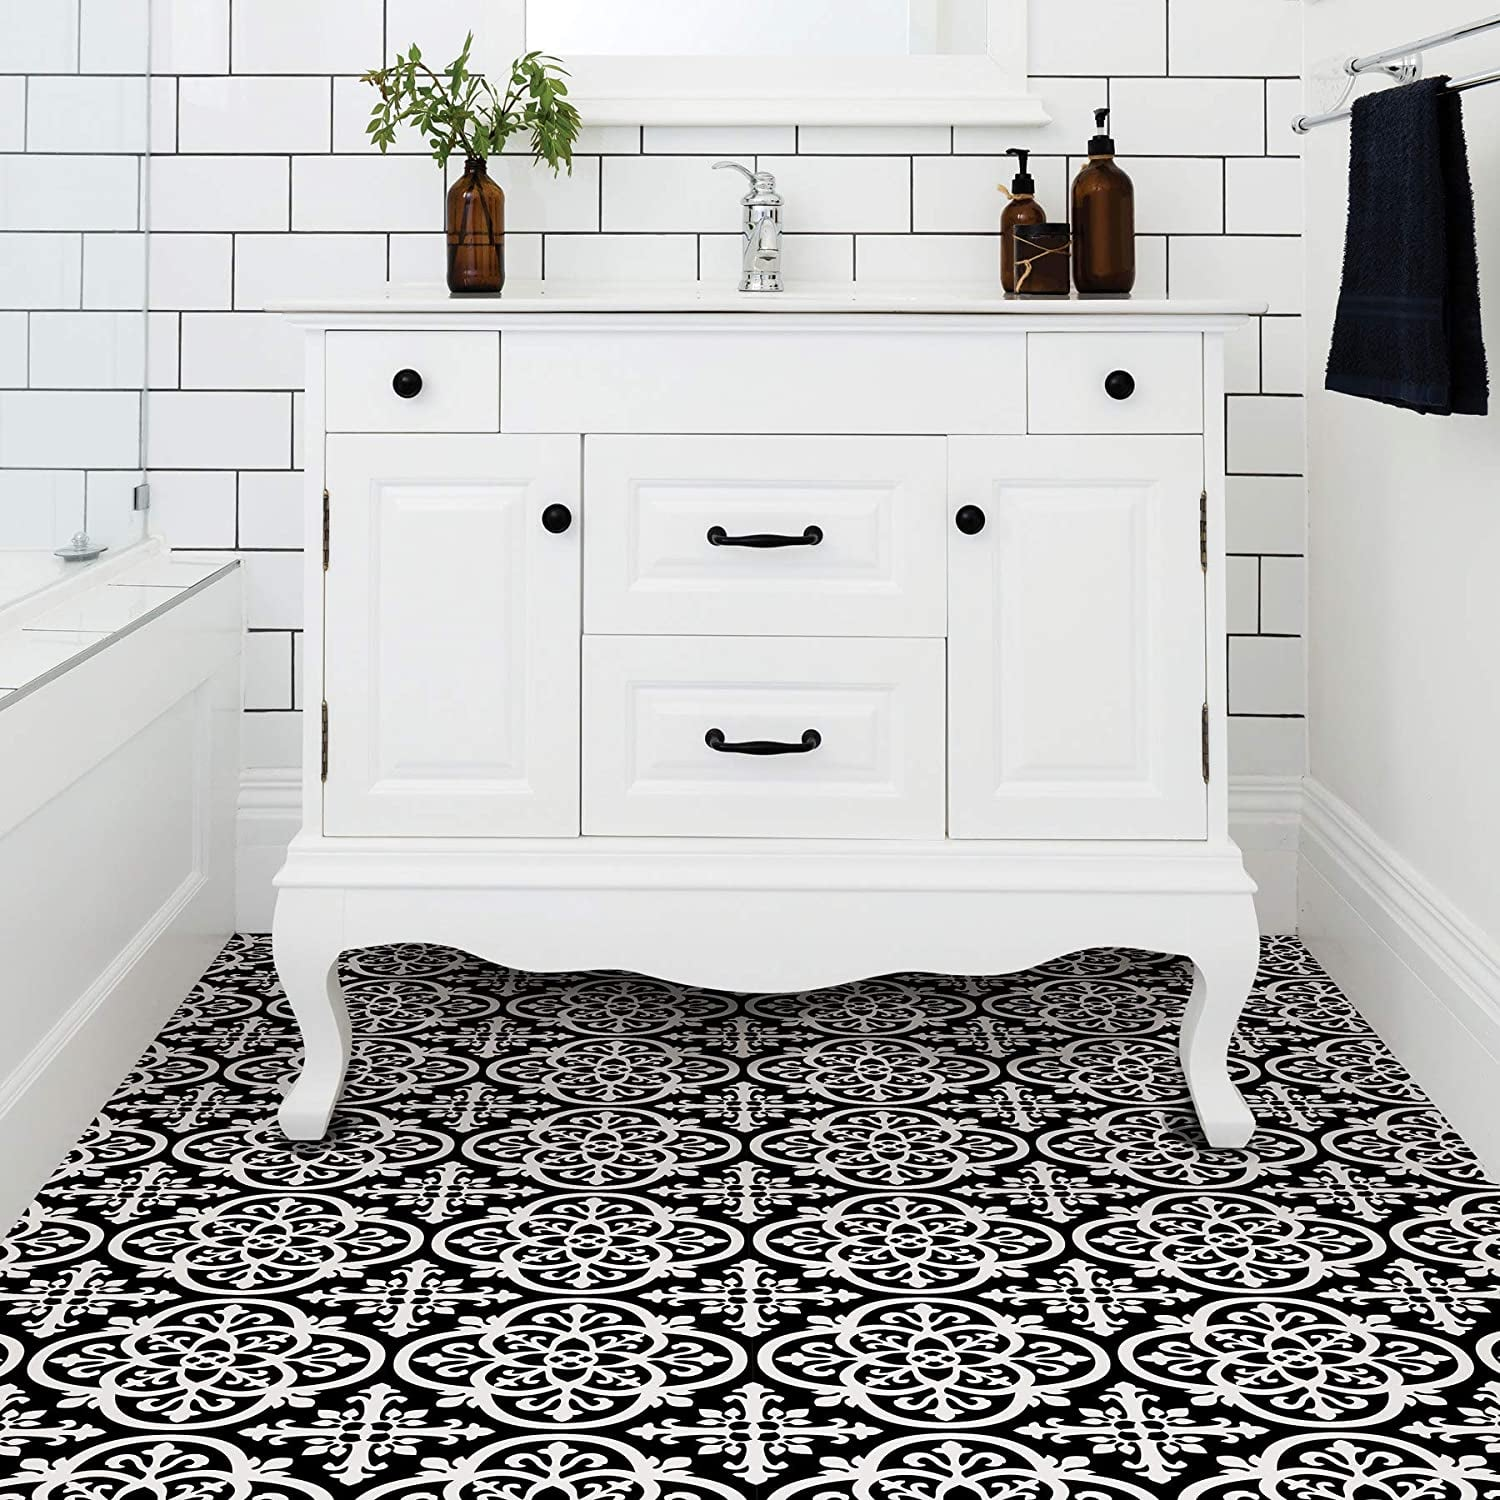 Upgrade Your Apartment Using Peel And Stick Floor Tiles Popsugar Home